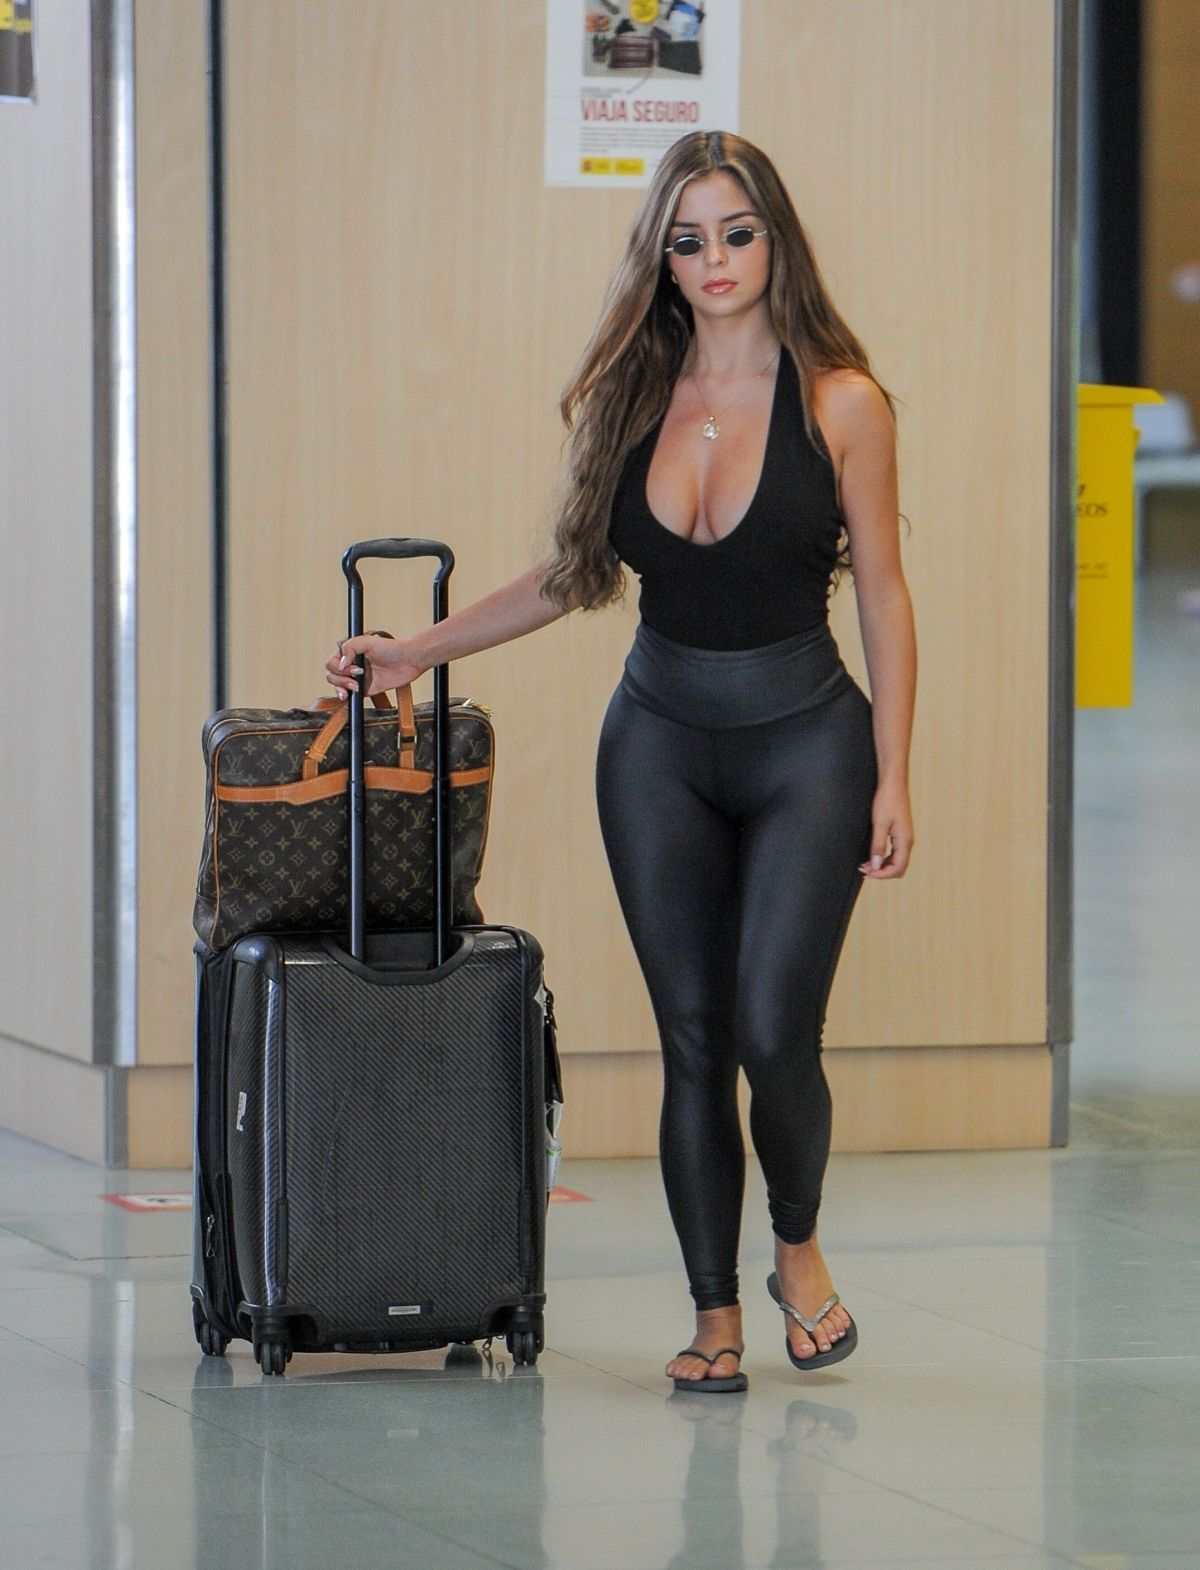 DEMI ROSE MAWBY Arrives at Airport in Ibiza 08/07/2018